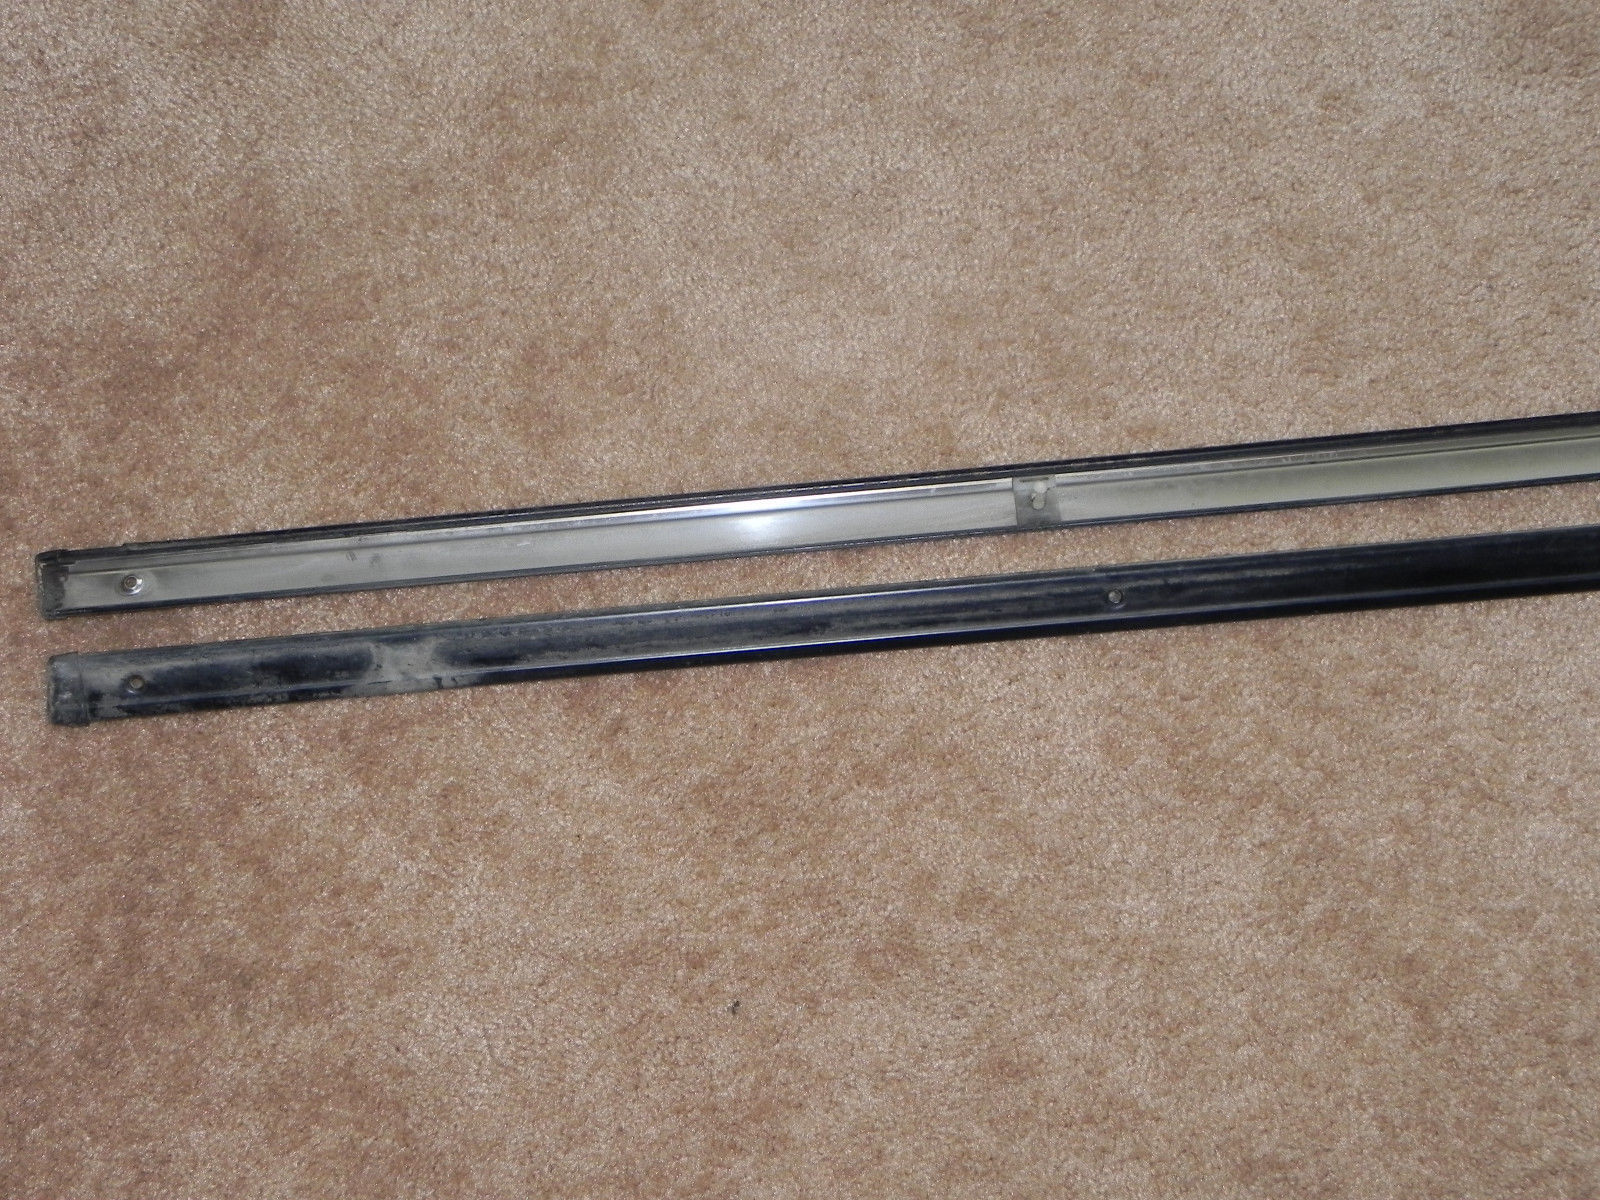 hight resolution of 92 96 lexus es300 rocker panel molding under door lower sill trim left and right